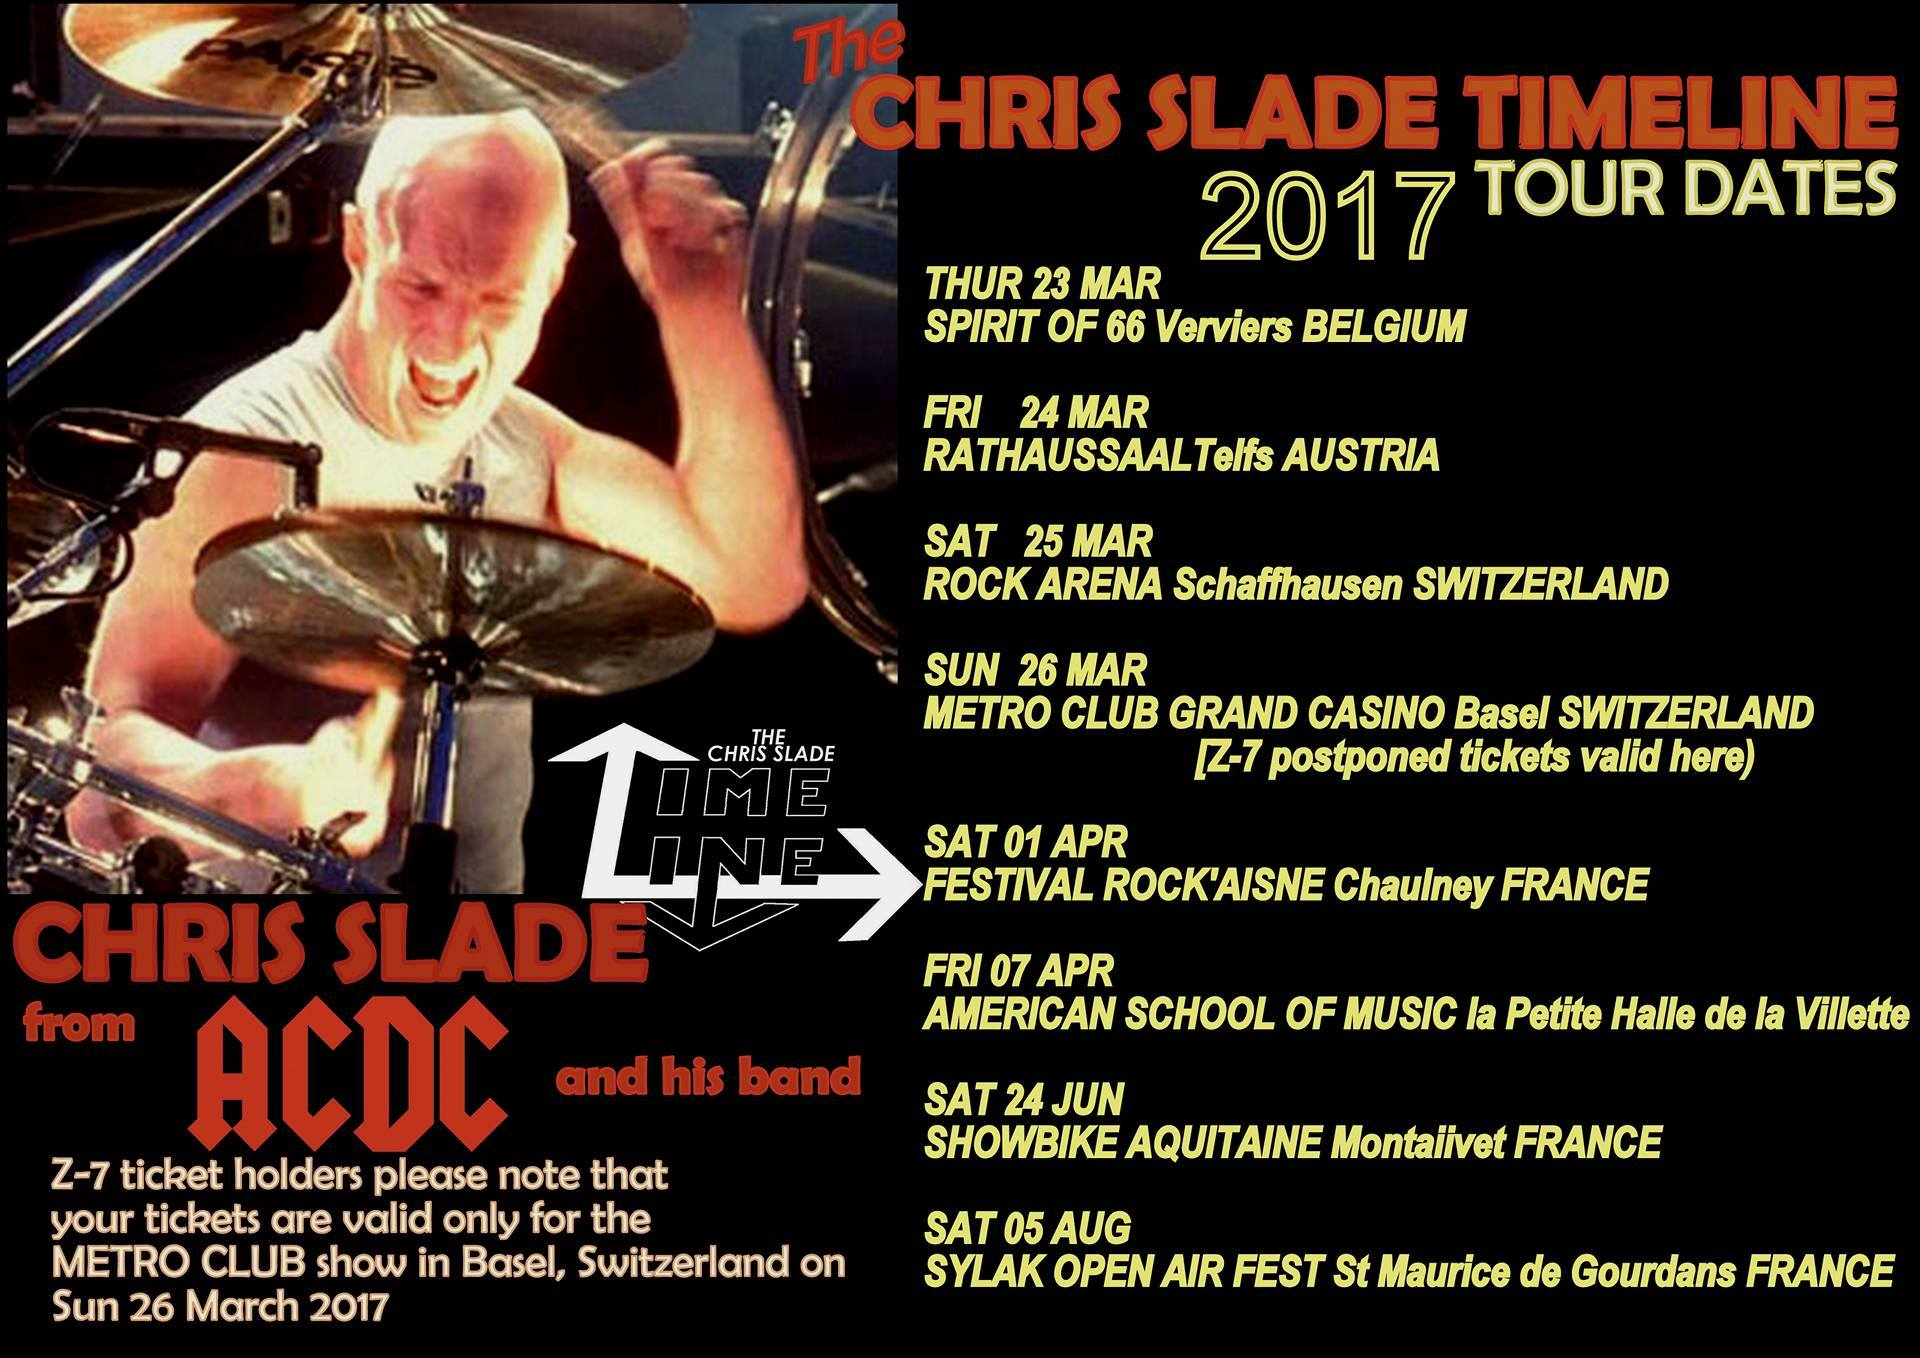 New Chris Slade Timeline Shows Announced for 2017